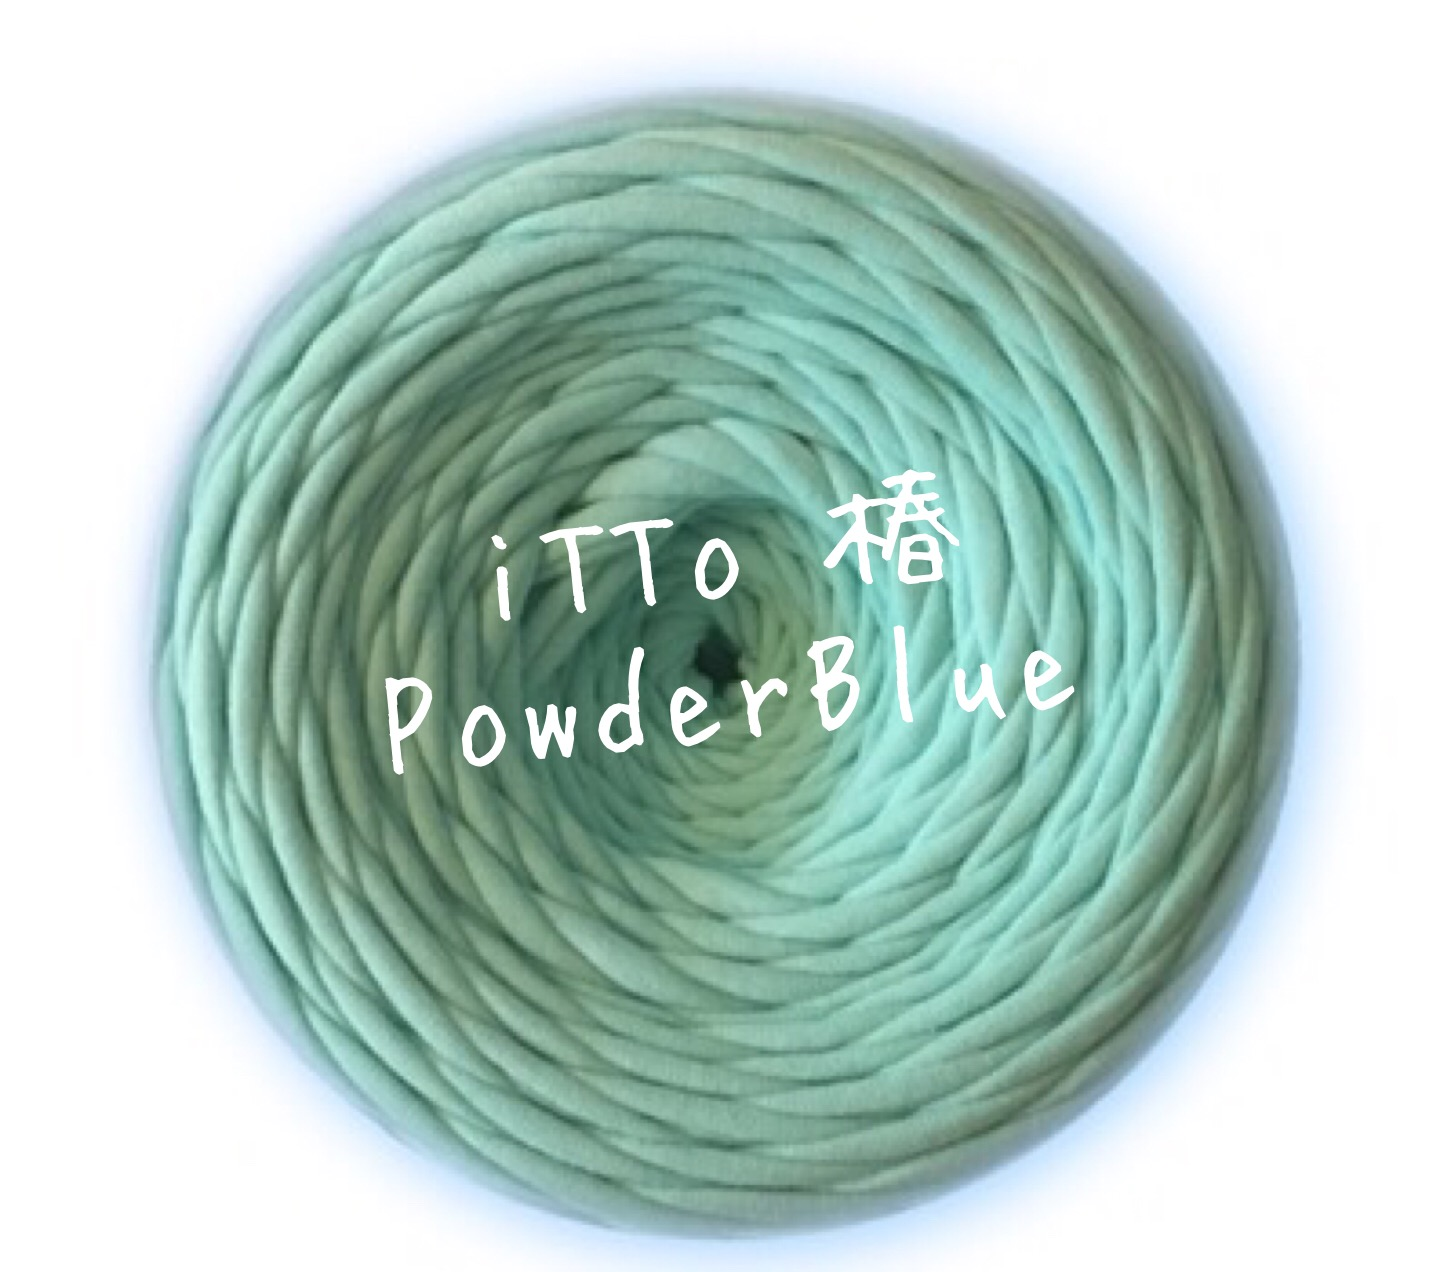 iTTo 椿 Powder Blue